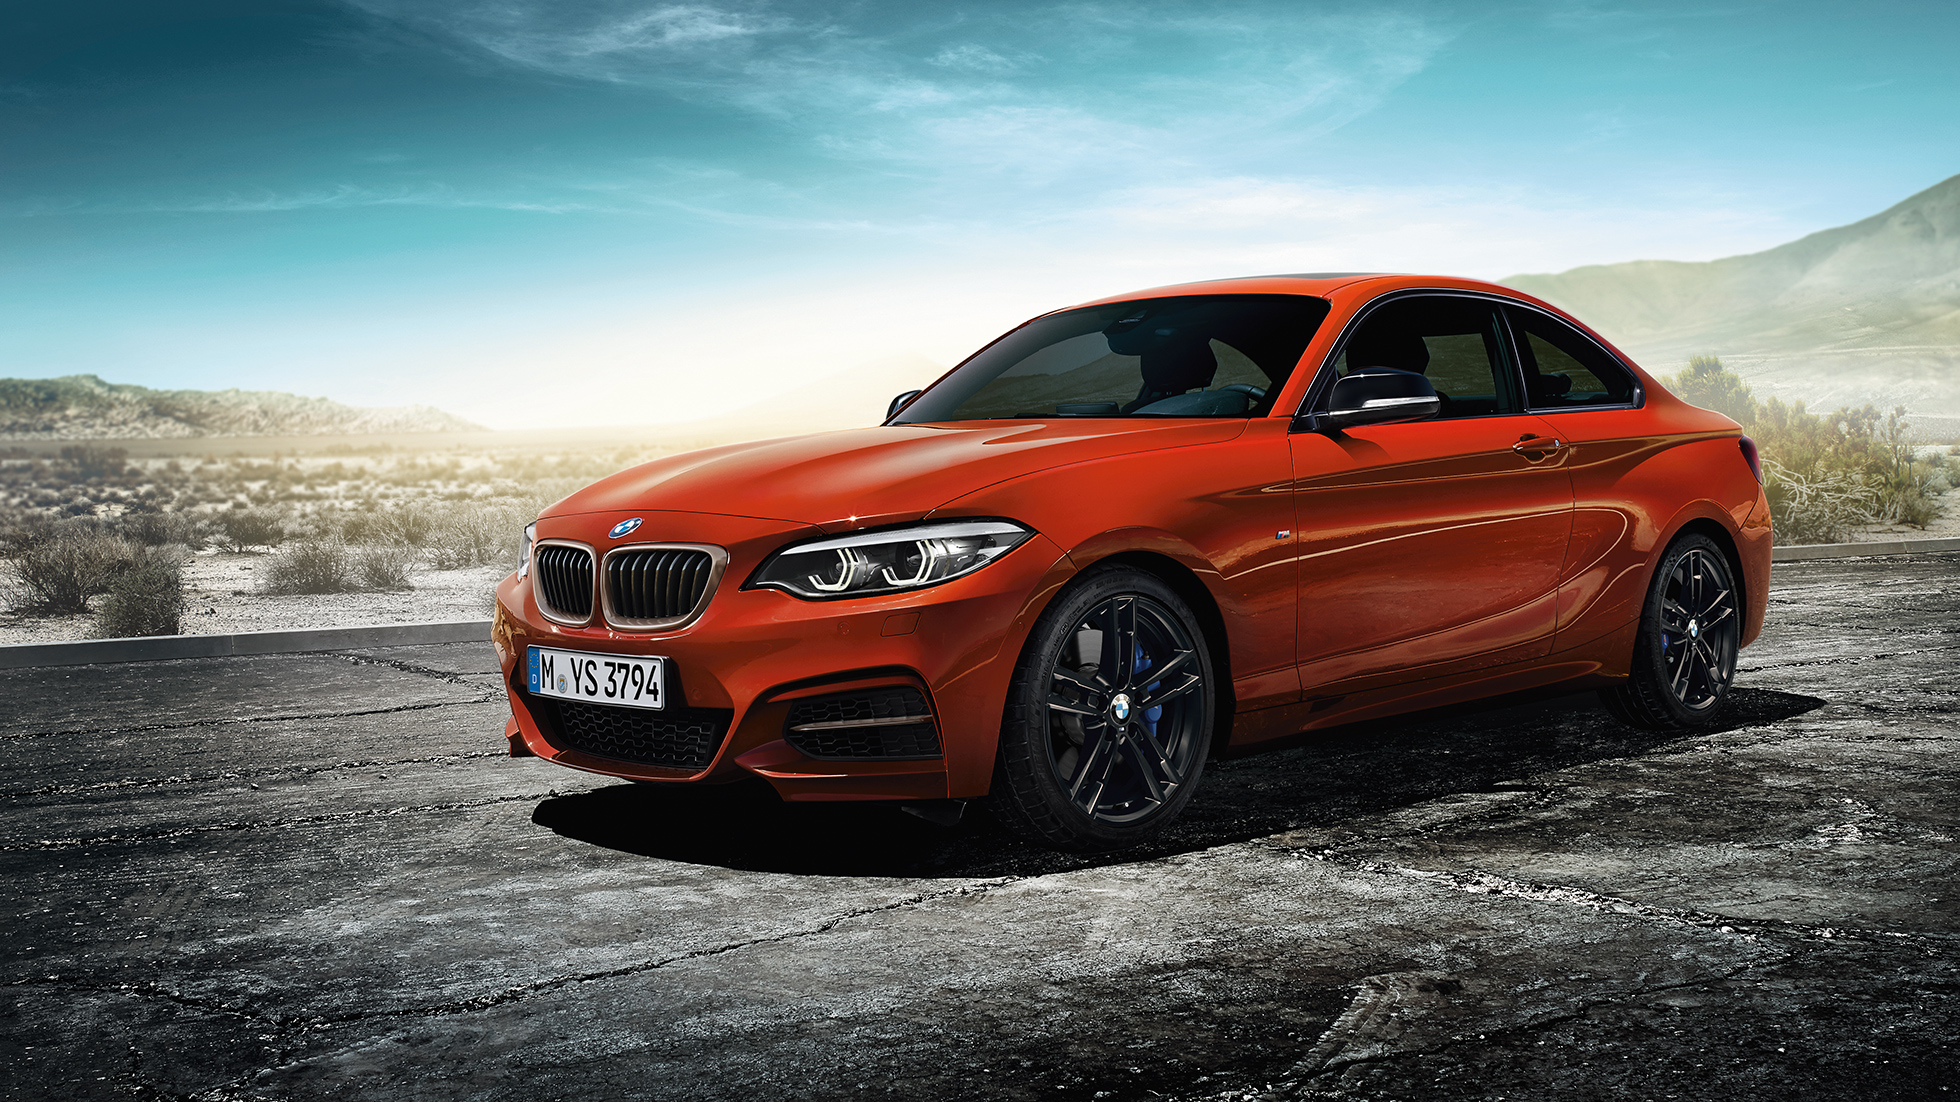 BMW 2 Series Coupé, still shot of the front